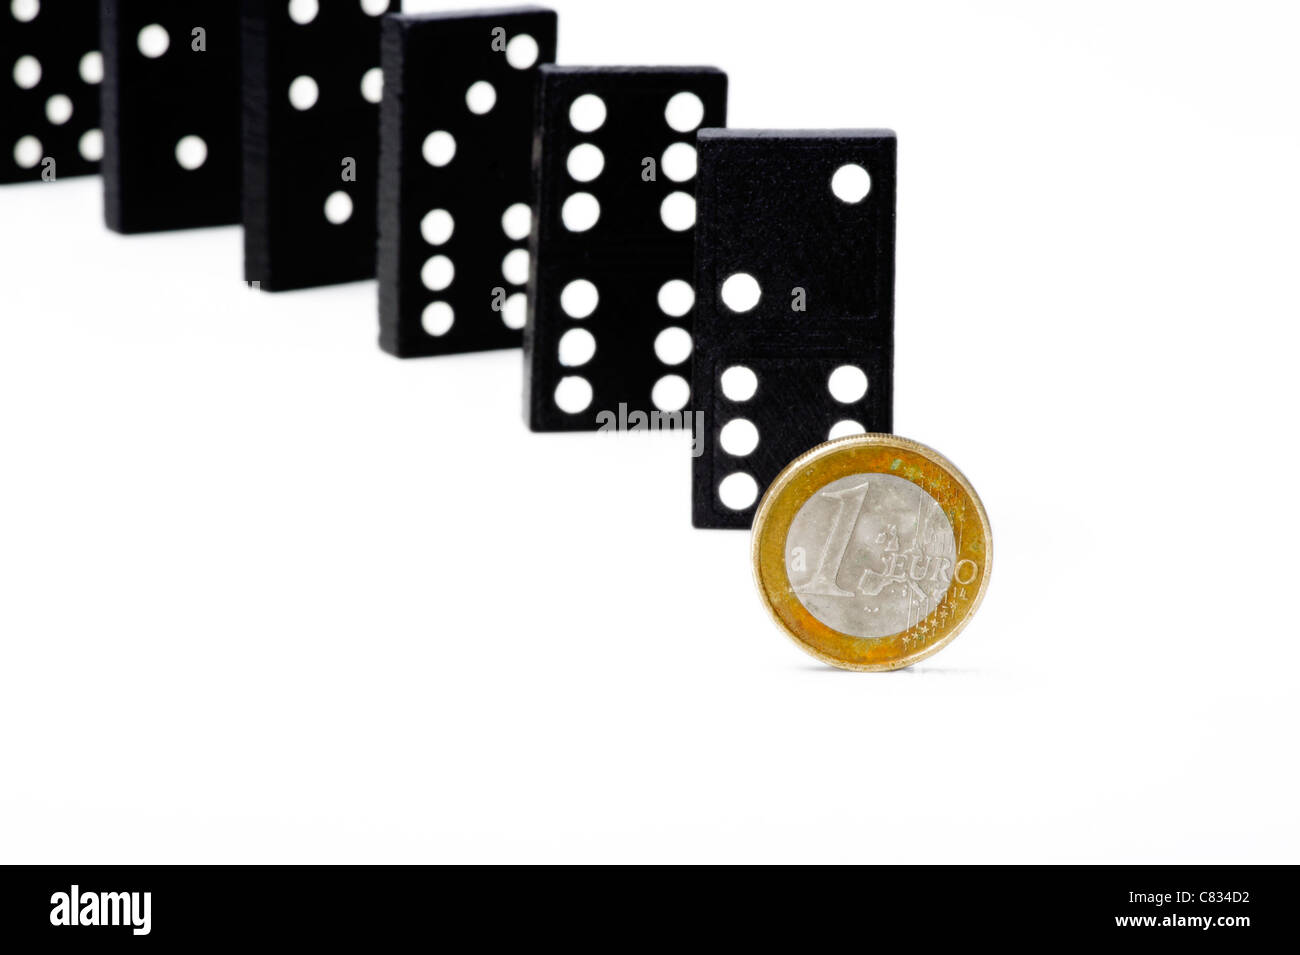 A standing  soiled Euro coin in front of Domino tiles - Stock Image